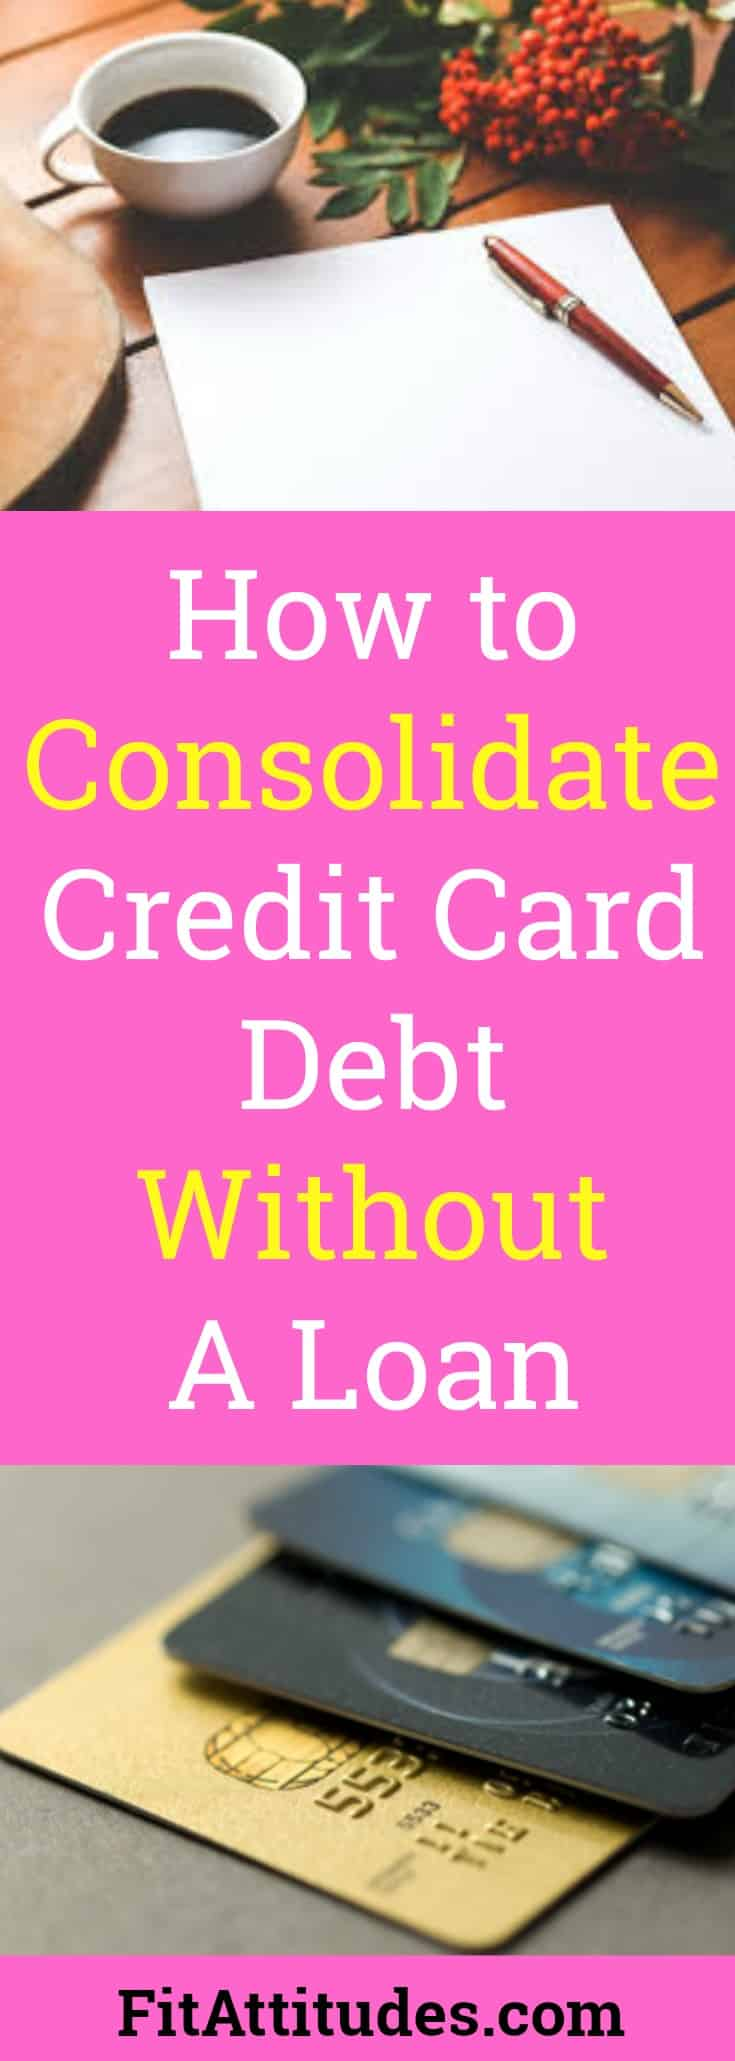 Consolidate Debt Without a Loan